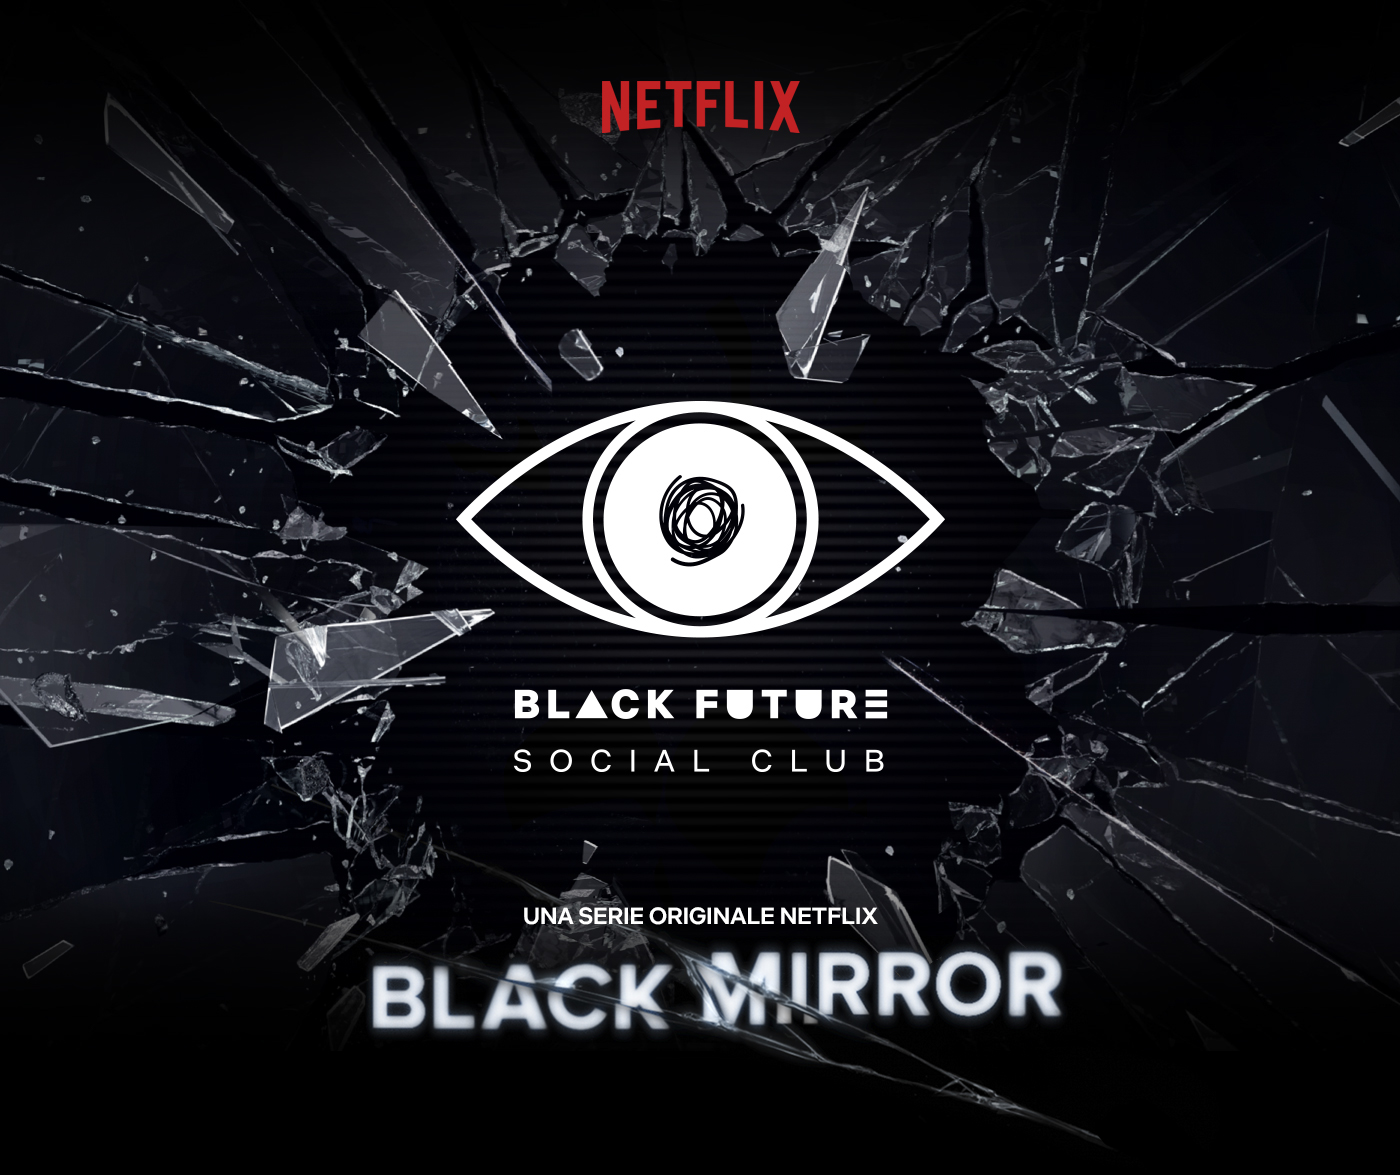 where to buy get new sale usa online Black Mirror 4 - Black Future Social Club on Behance